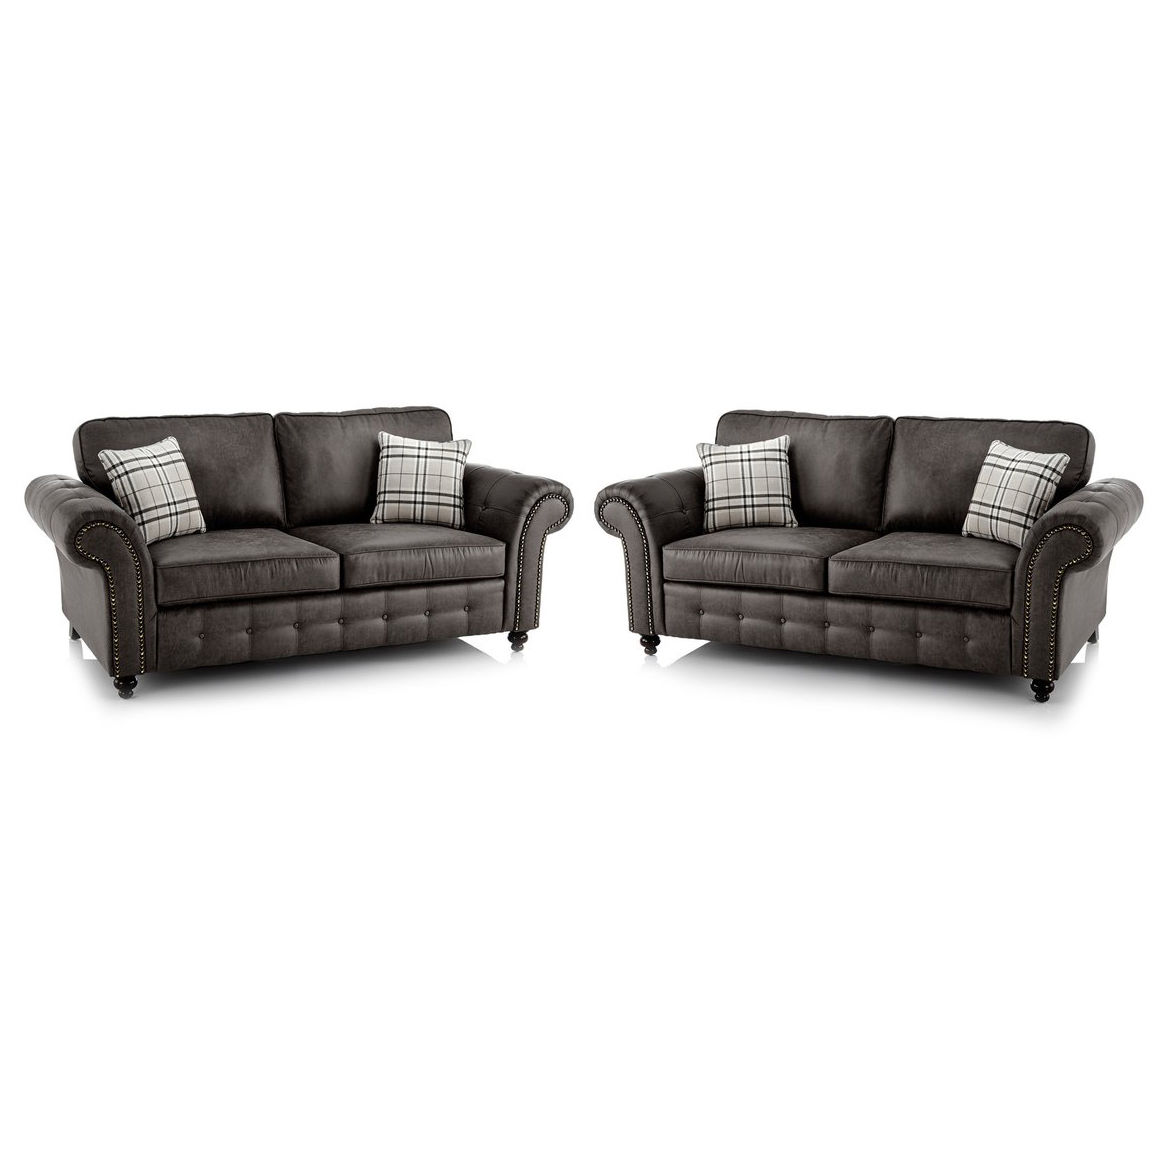 Oakland Faux Leather 3 and 2 Seater Sofa Combo in Black